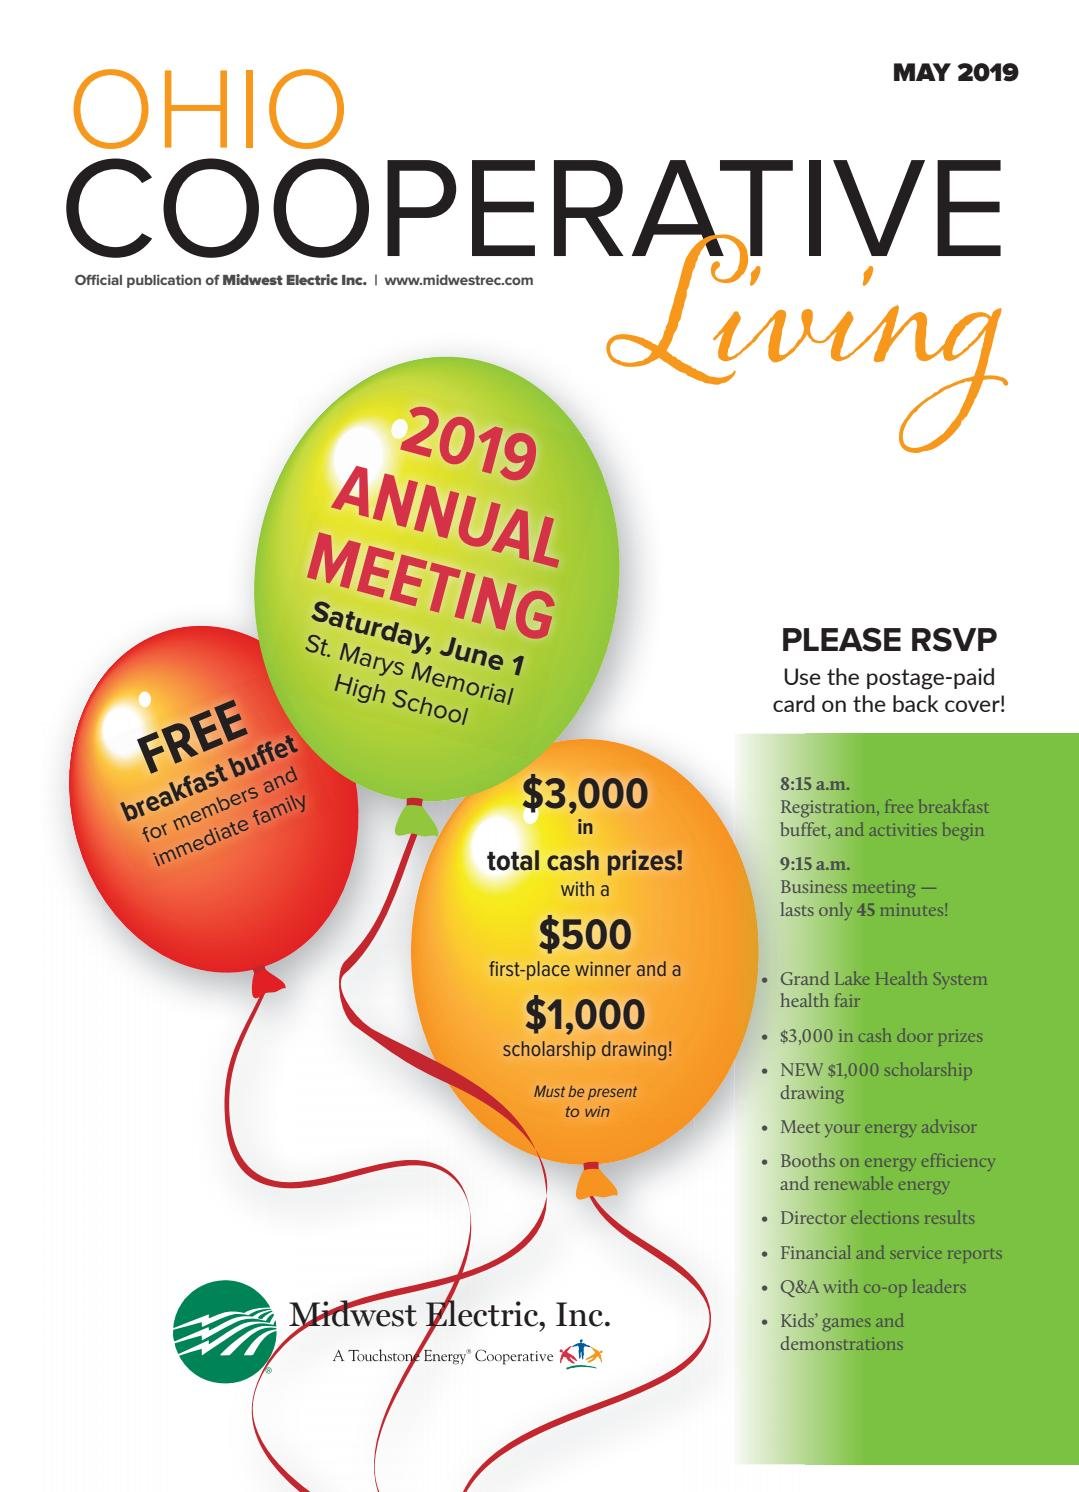 Ohio Cooperative Living - May 2019 - Midwest by Ohio Cooperative